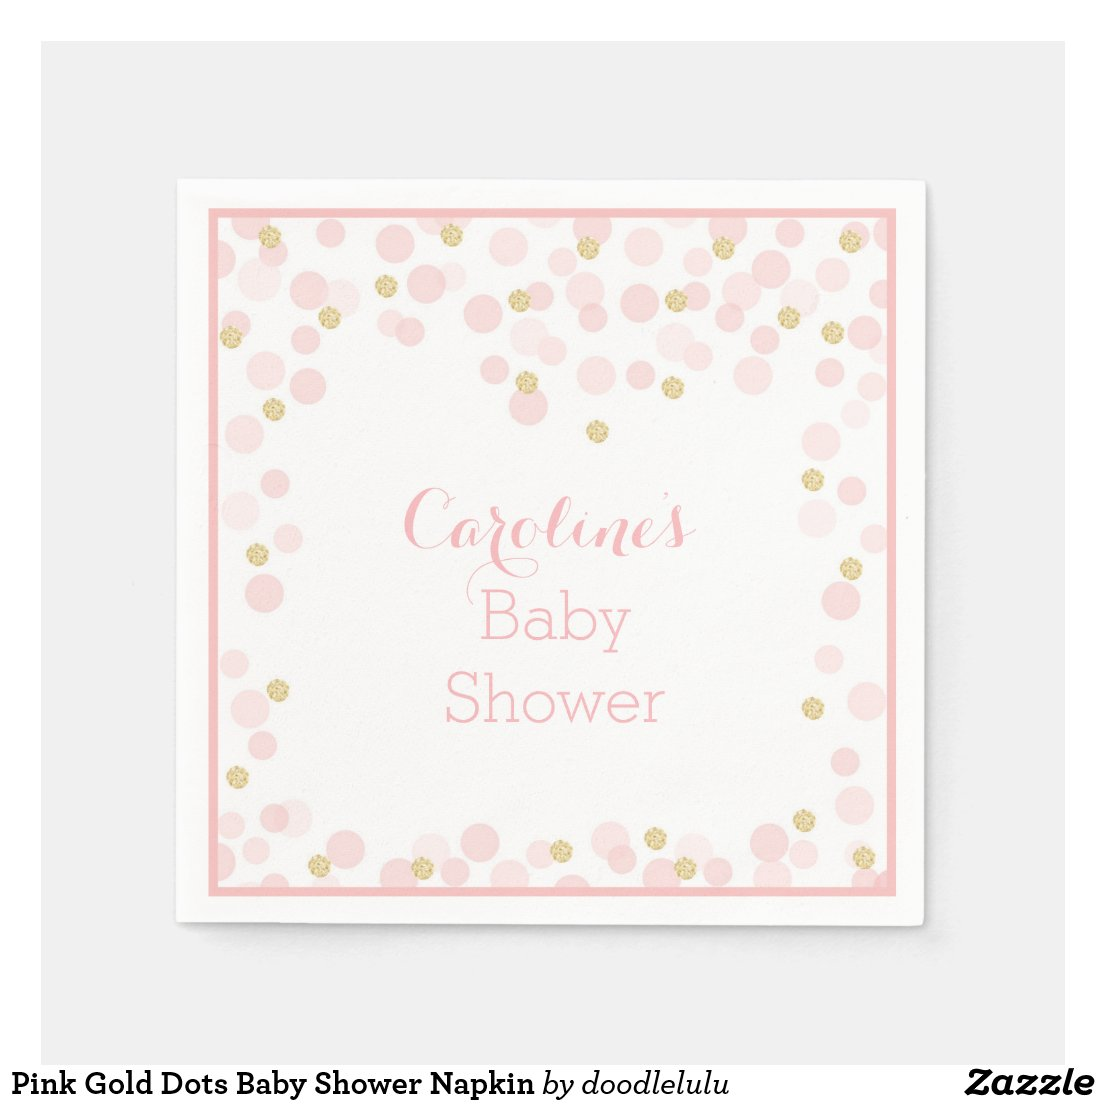 Pink Gold Dots Baby Shower Napkin